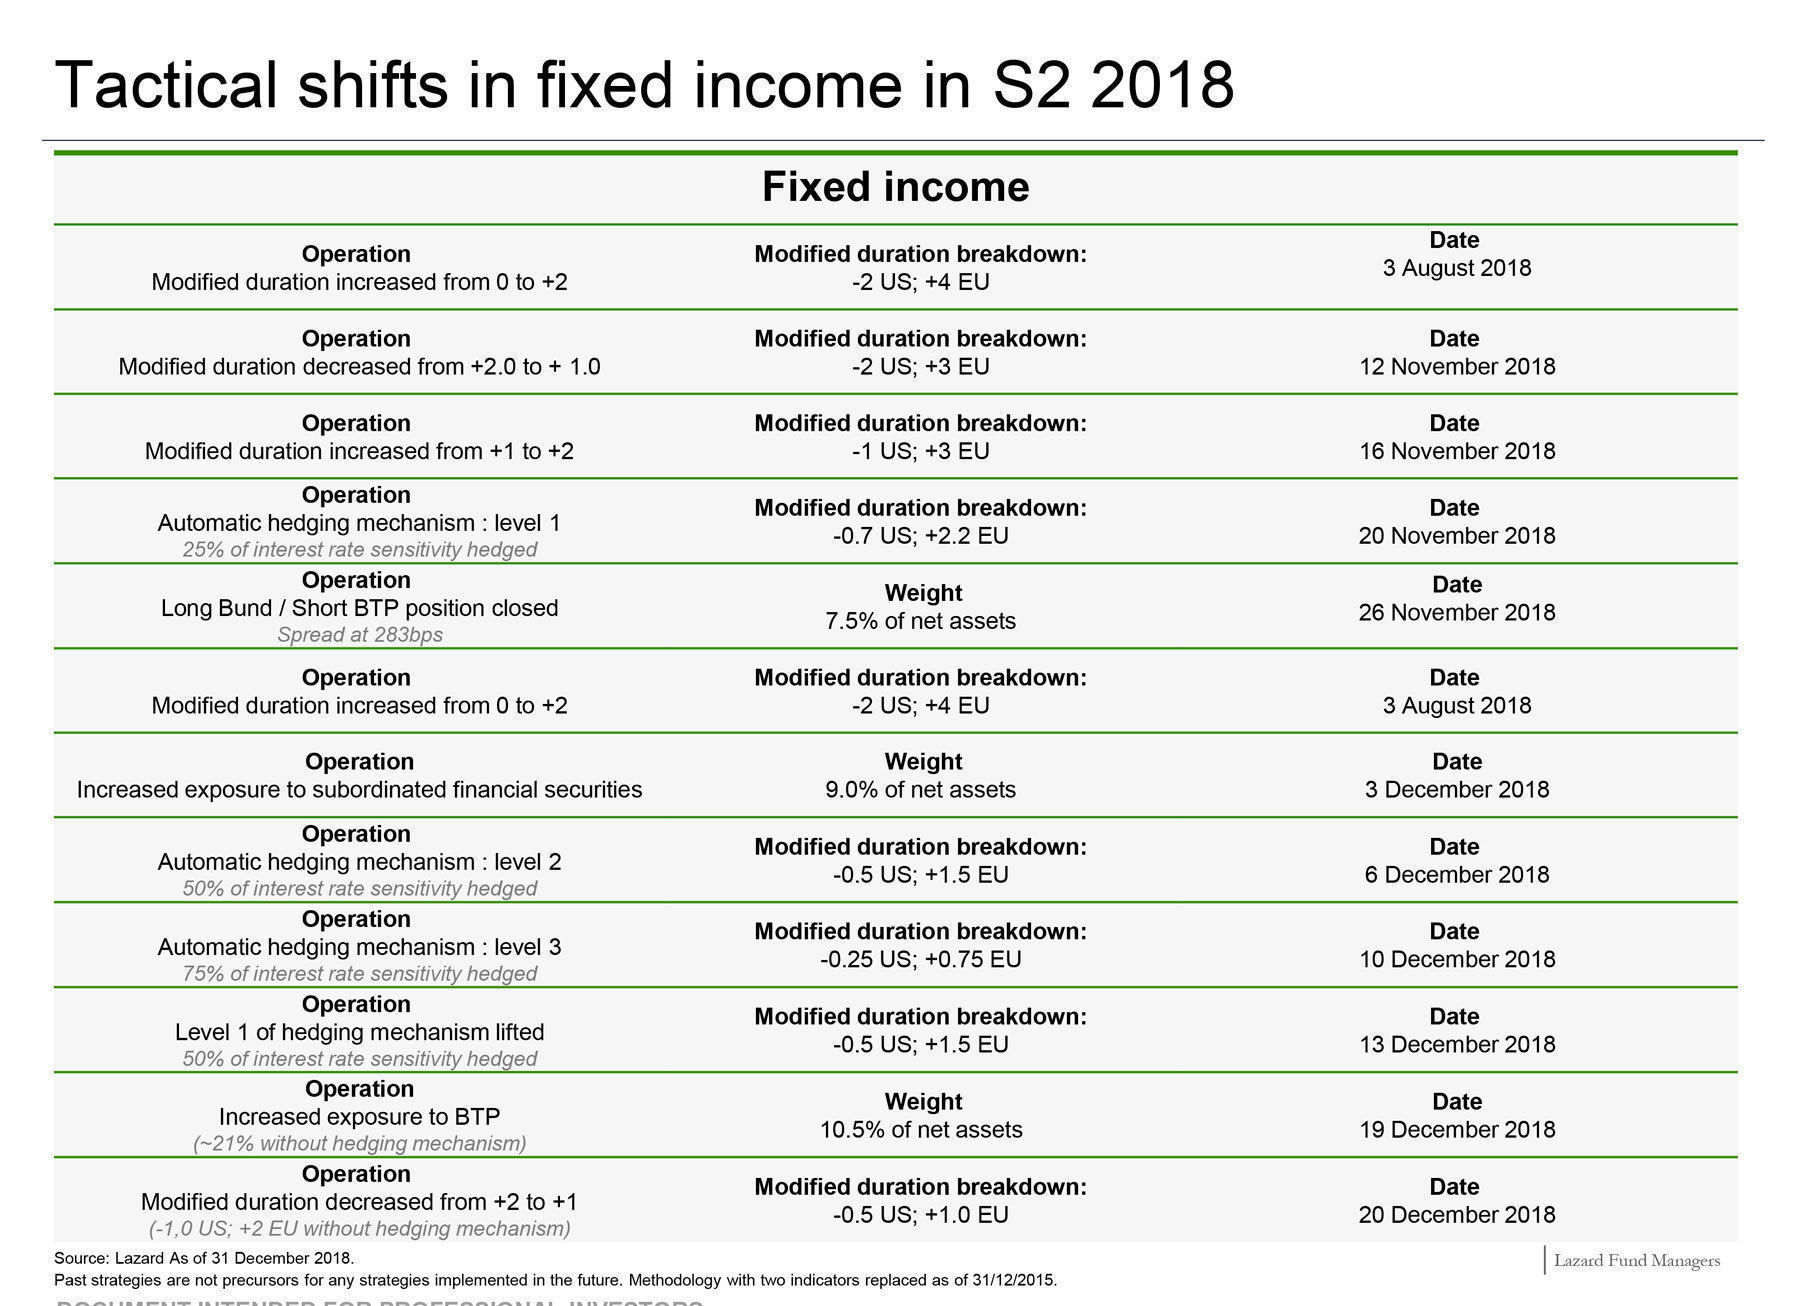 Lazard-Patrimoine-Shift-FixedIncome